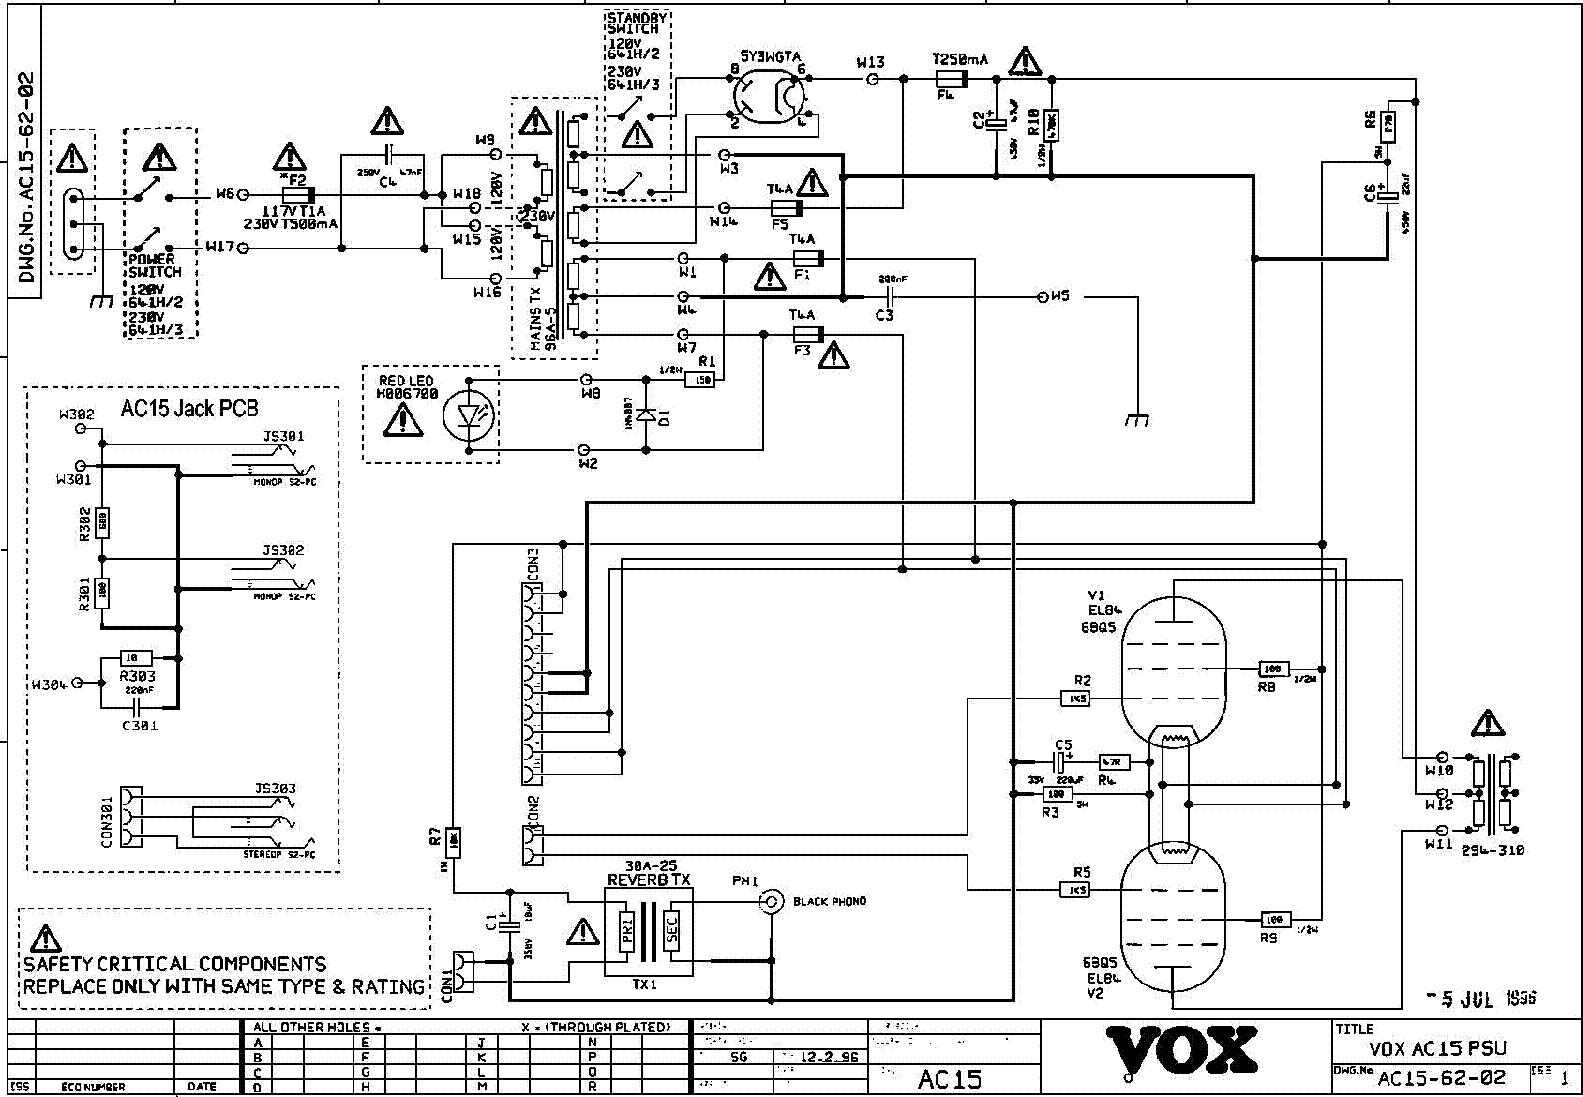 Vox Ac10 Sch Service Manual Free Download Schematics